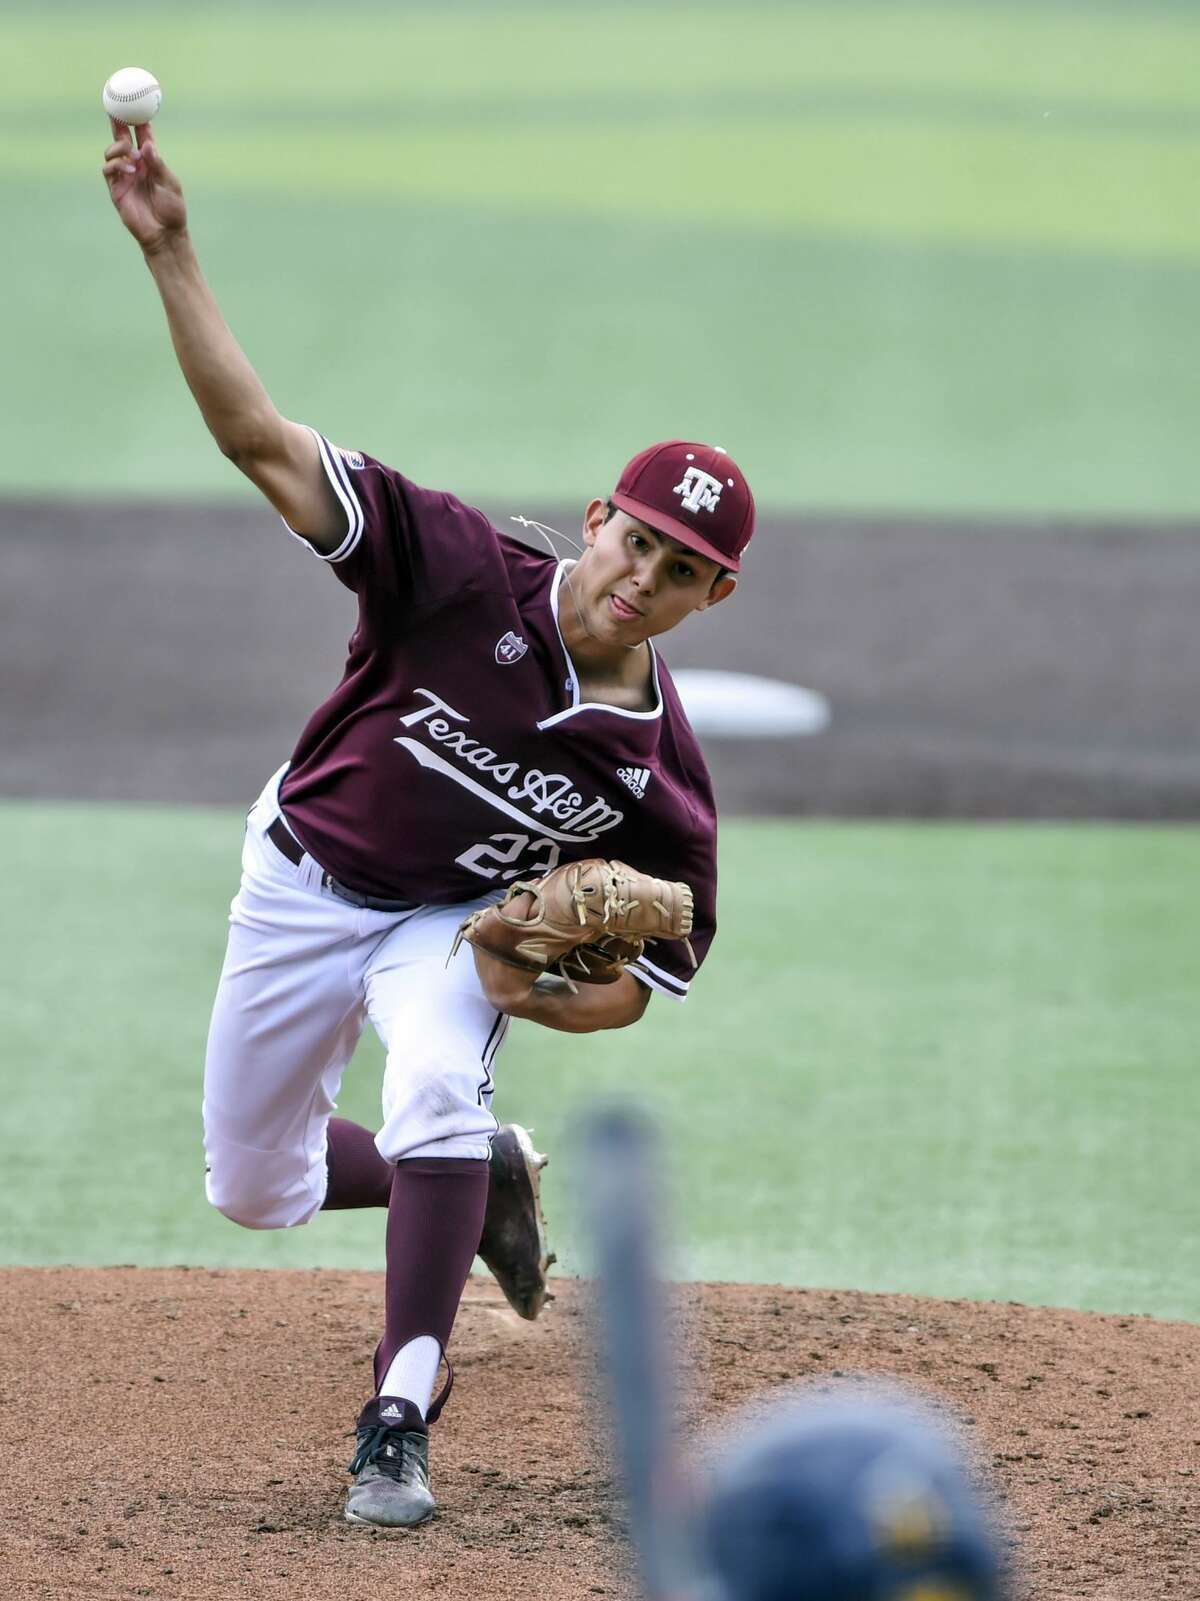 Christian Roa, RHP, Texas A&M (Memorial High School)Picked: Second round, 48th overall to the Cincinnati Reds Approximate pick value: $1.54 million